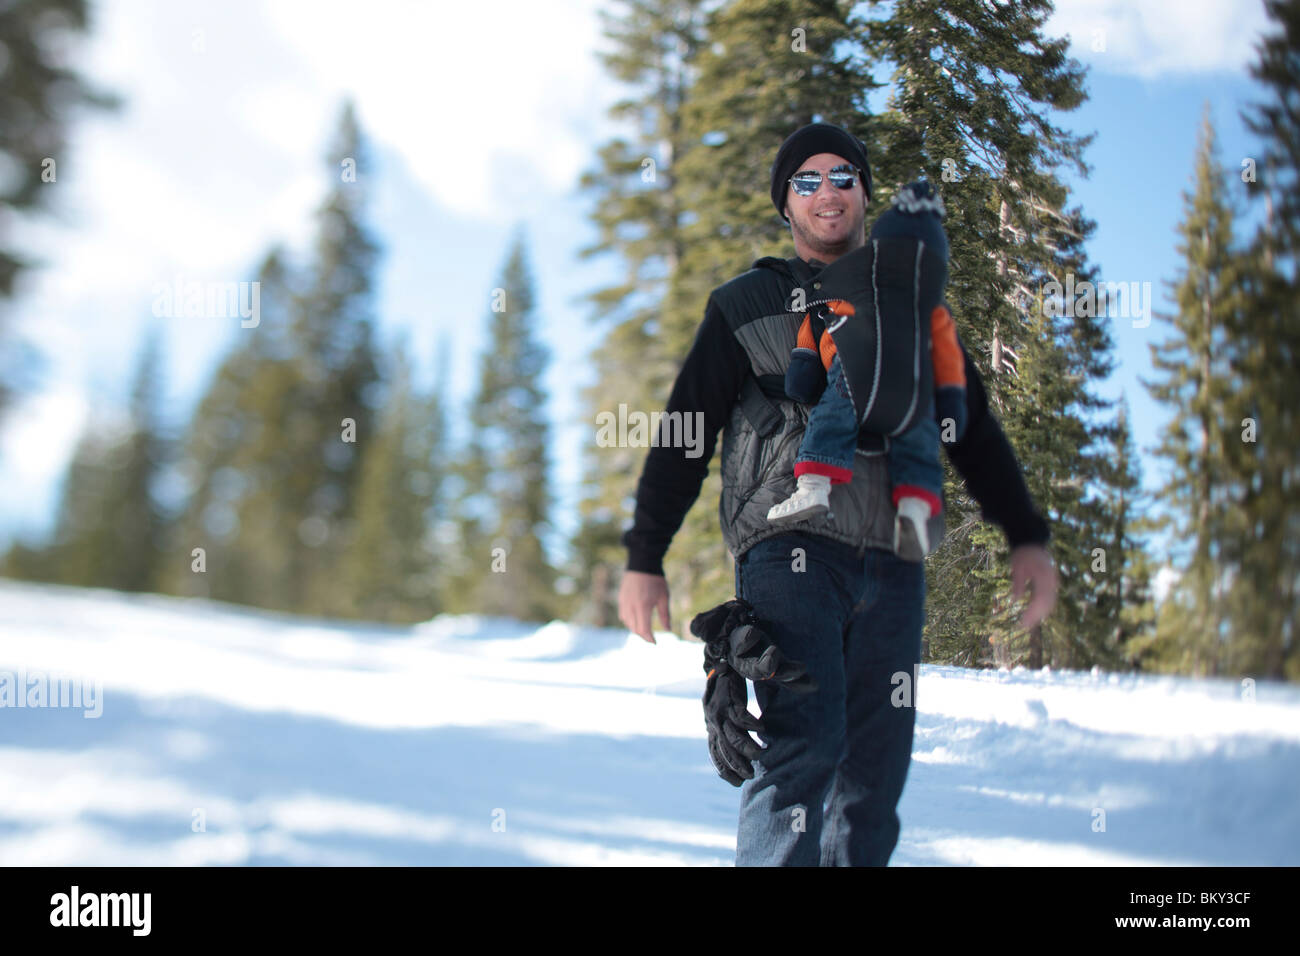 A father, age 35, walks with his son, age 4 months, in the snow covered wilderness of Lake Tahoe, Calfornia. - Stock Image